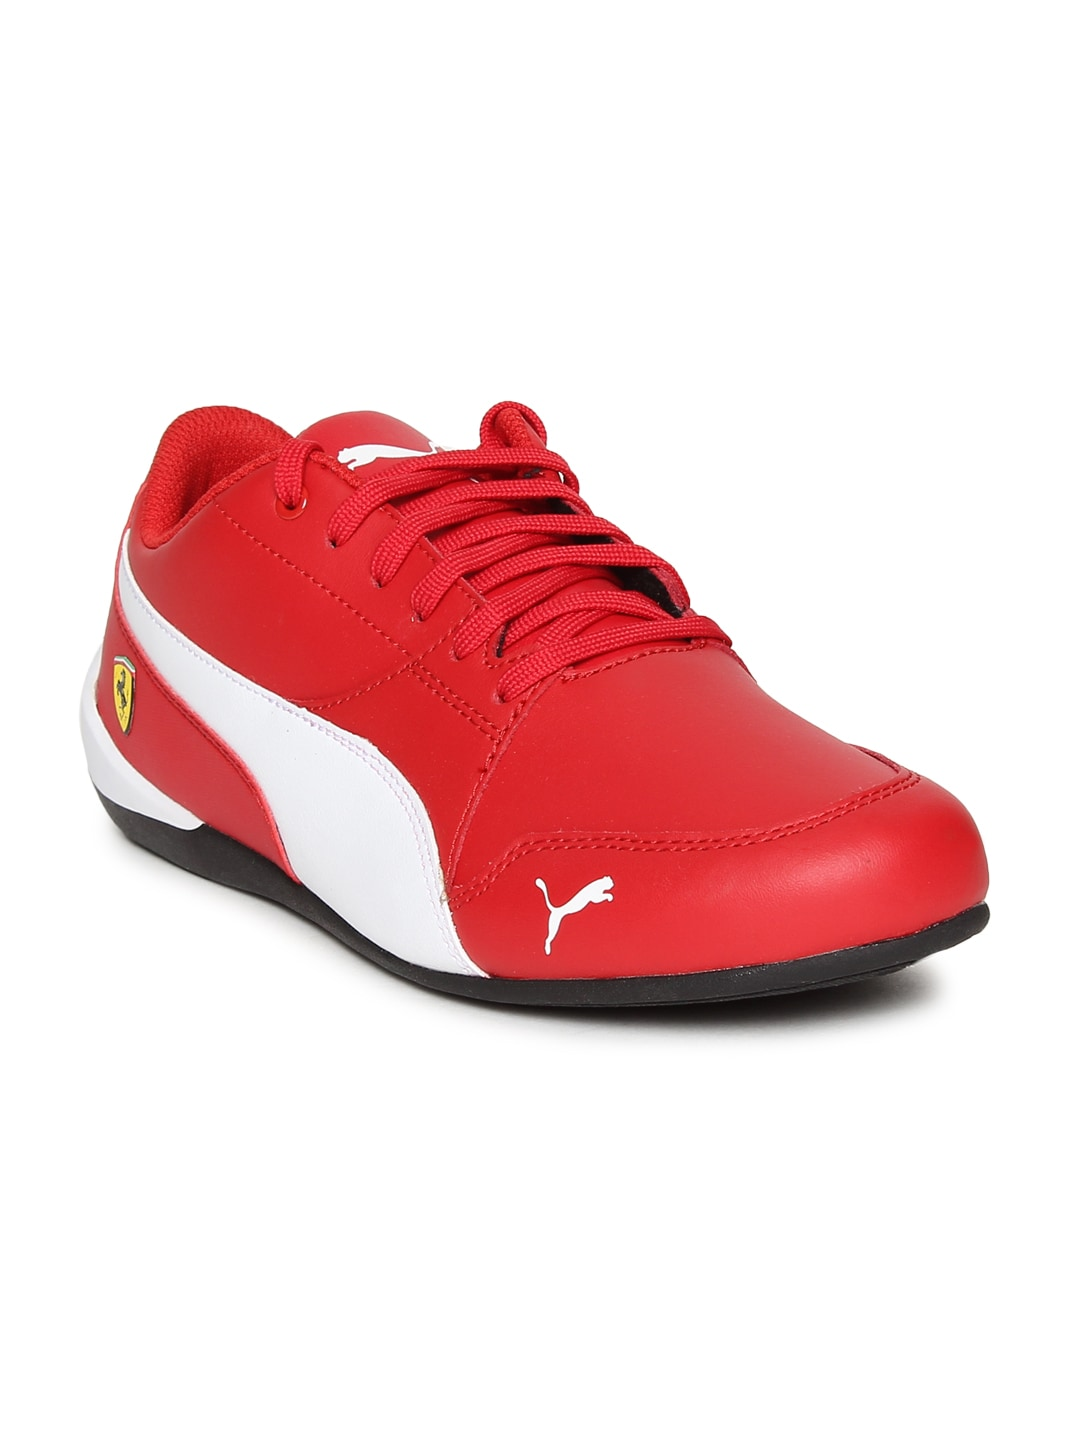 b0302a87d9106d Puma Drift Cat - Buy Puma Drift Cat online in India